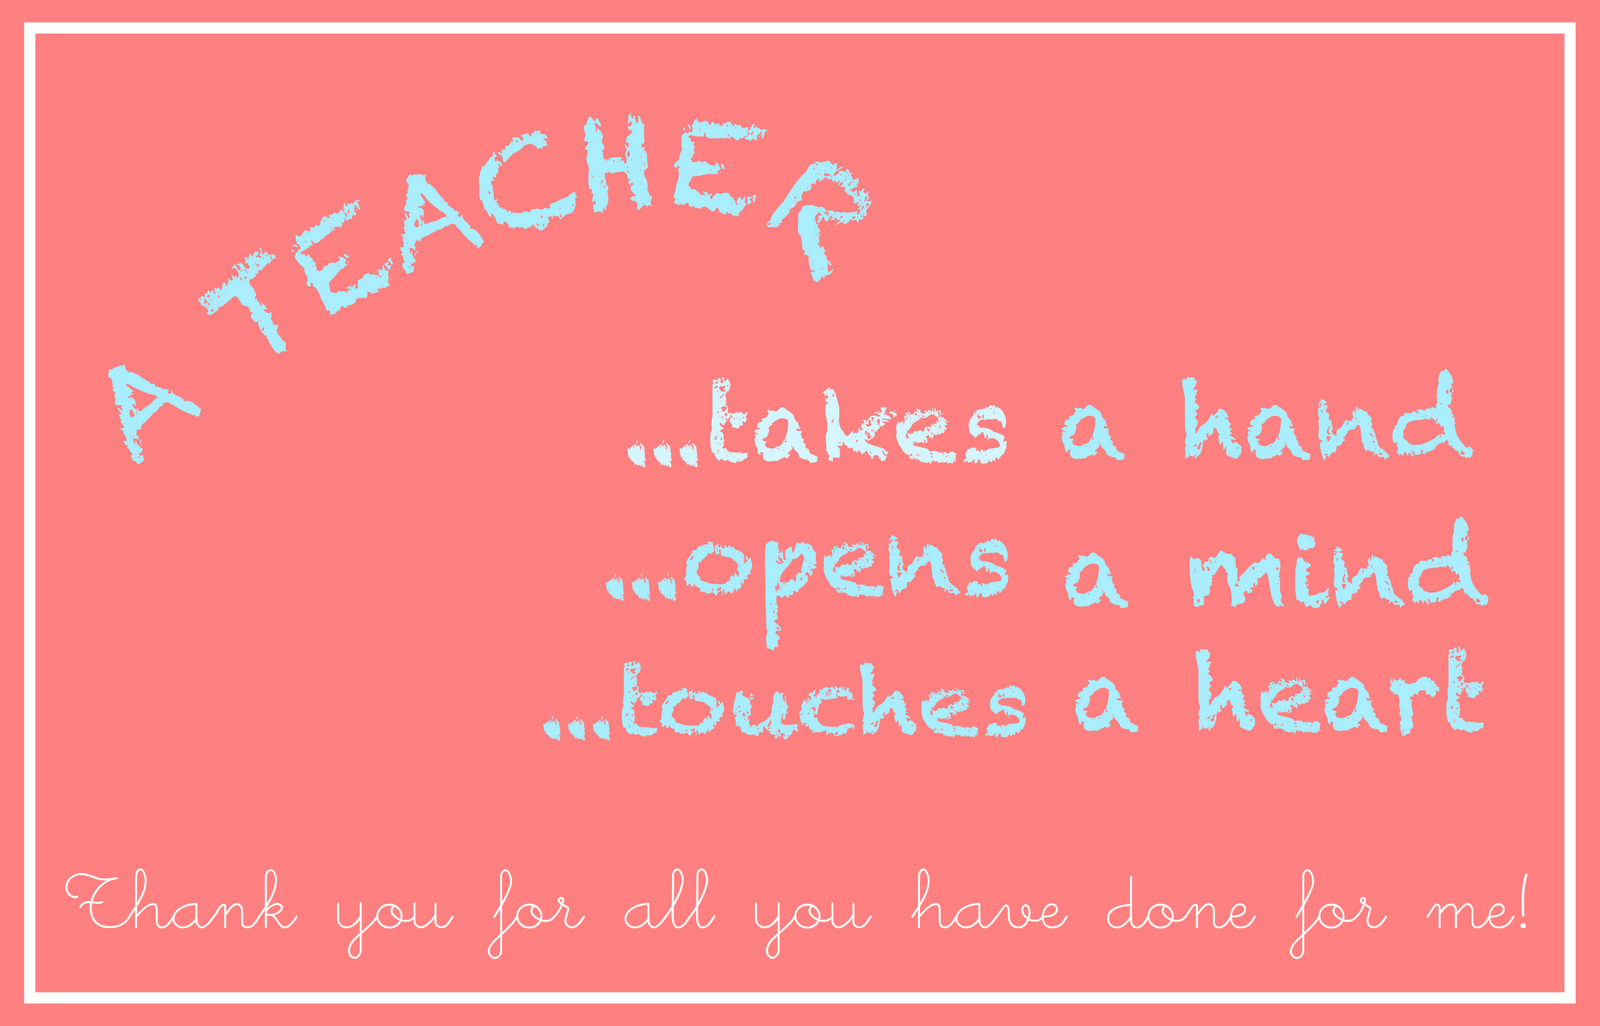 photo relating to Printable Teacher Appreciation Card titled no cost printable trainer appreciation card - an Lehrer